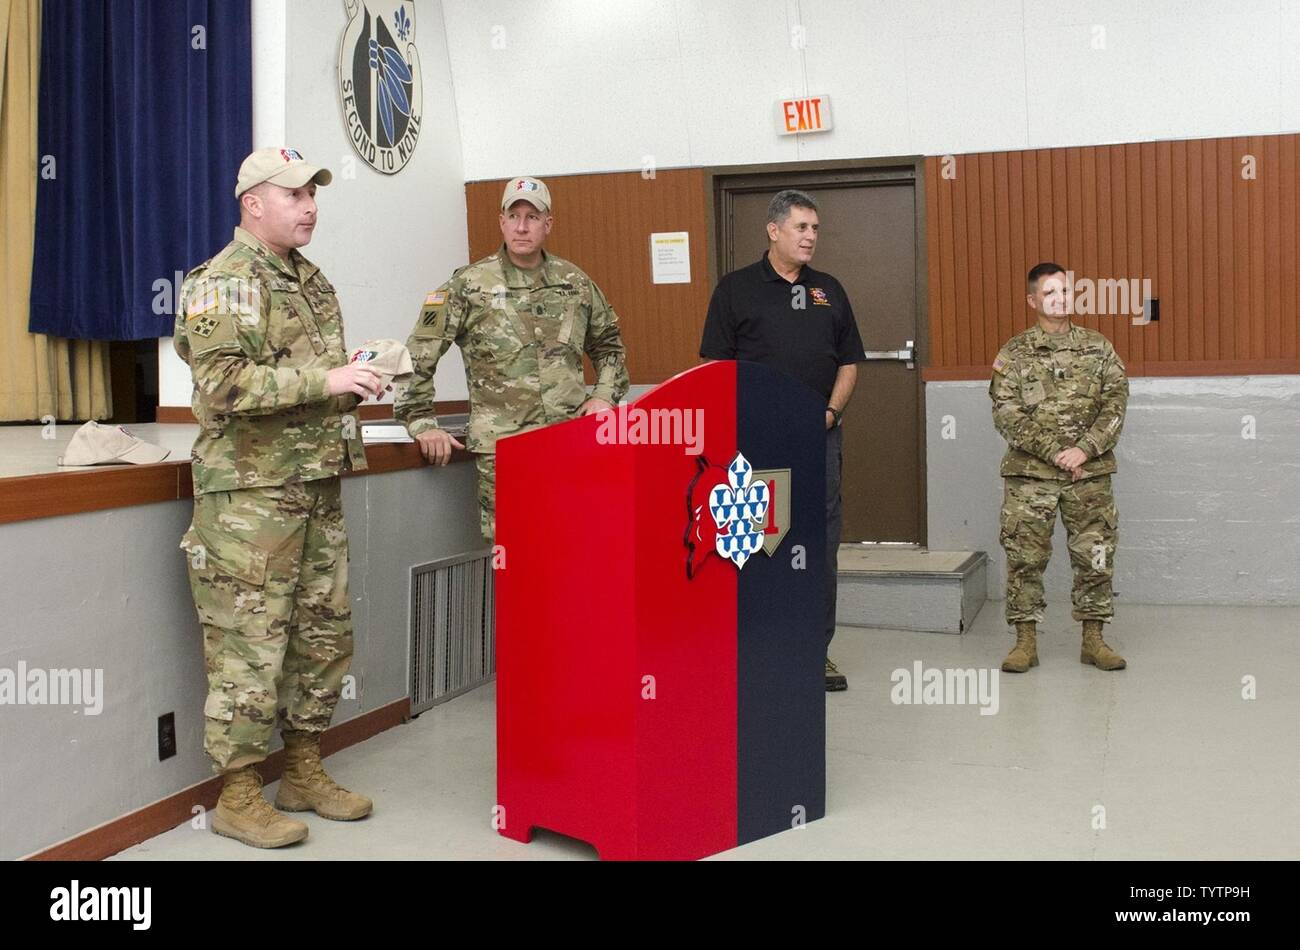 CAMP HOVEY, Republic of Korea – Col. Timothy Hayden (left), the commander of the 1st Armored Brigade Combat Team, 1st Infantry Division, introduces Sgt. Maj. Alan Hummel, senior enlisted leader to the Armor School at the Maneuver Center of Excellence, Fort Benning, Ga., to 1st ABCT Soldiers during the Armor School's visit at the Hovey Multipurpose Complex, Camp Hovey, South Korea, Nov 29. - Stock Image